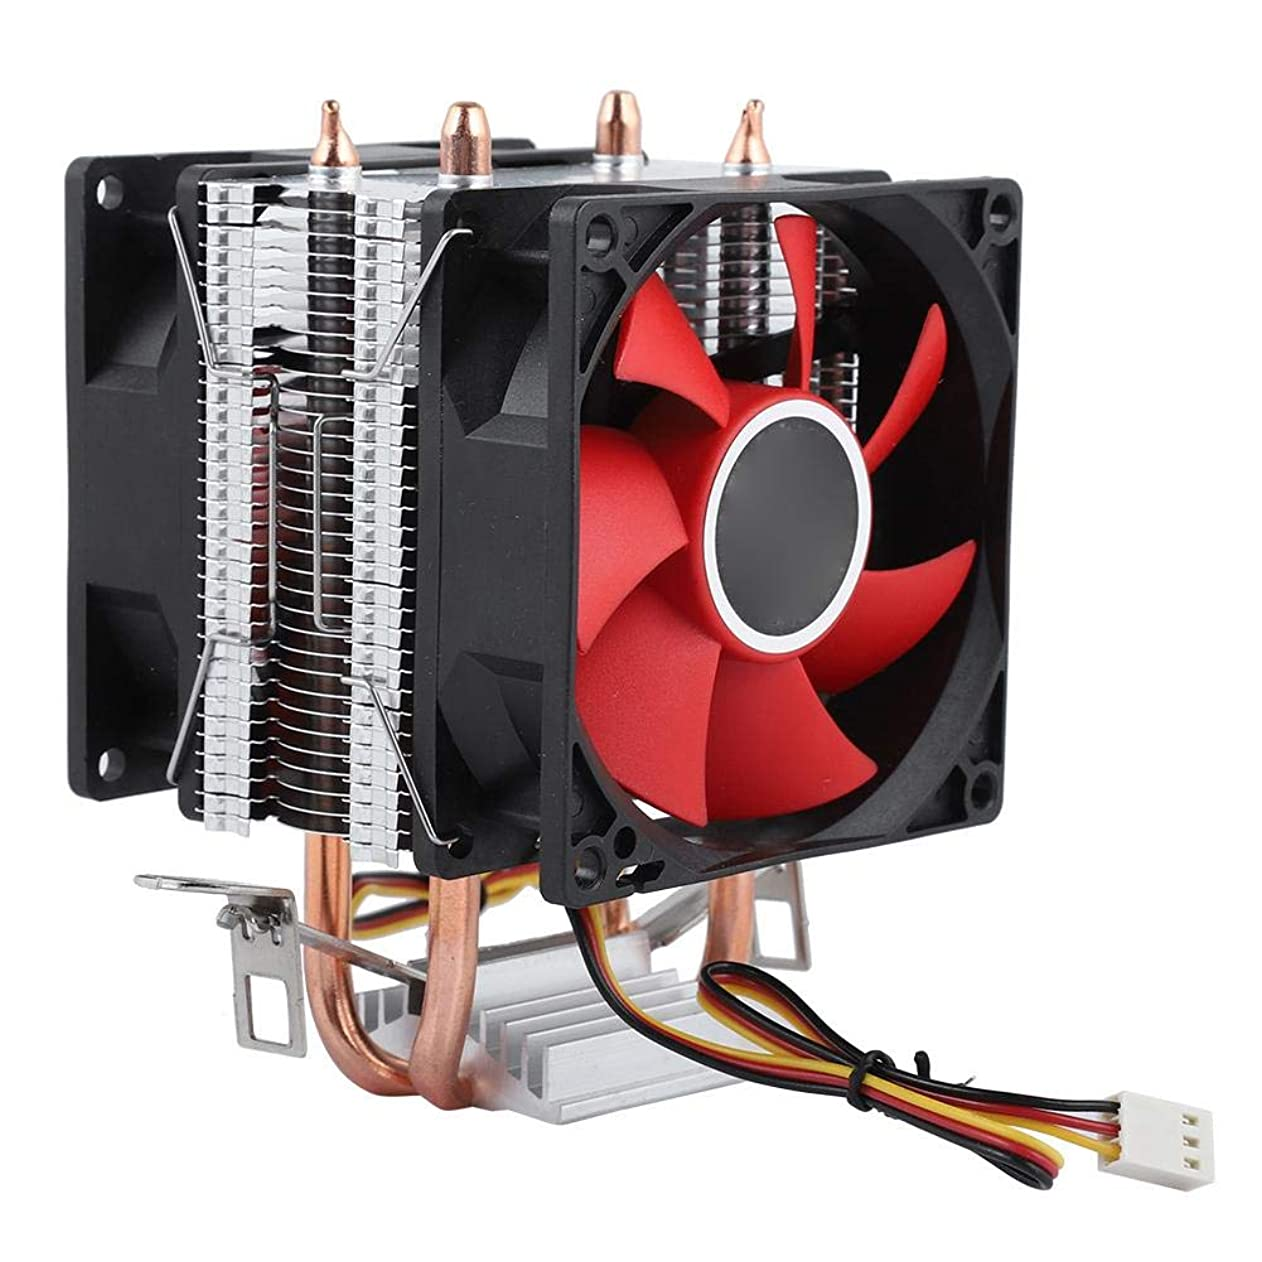 Serounder Dual CPU Cooling Fan, Mini CPU Air Cooler Fan 2 Copper Heat Pipe Heatsink Quiet Radiator for Computer PC vtvpmapppgq28647